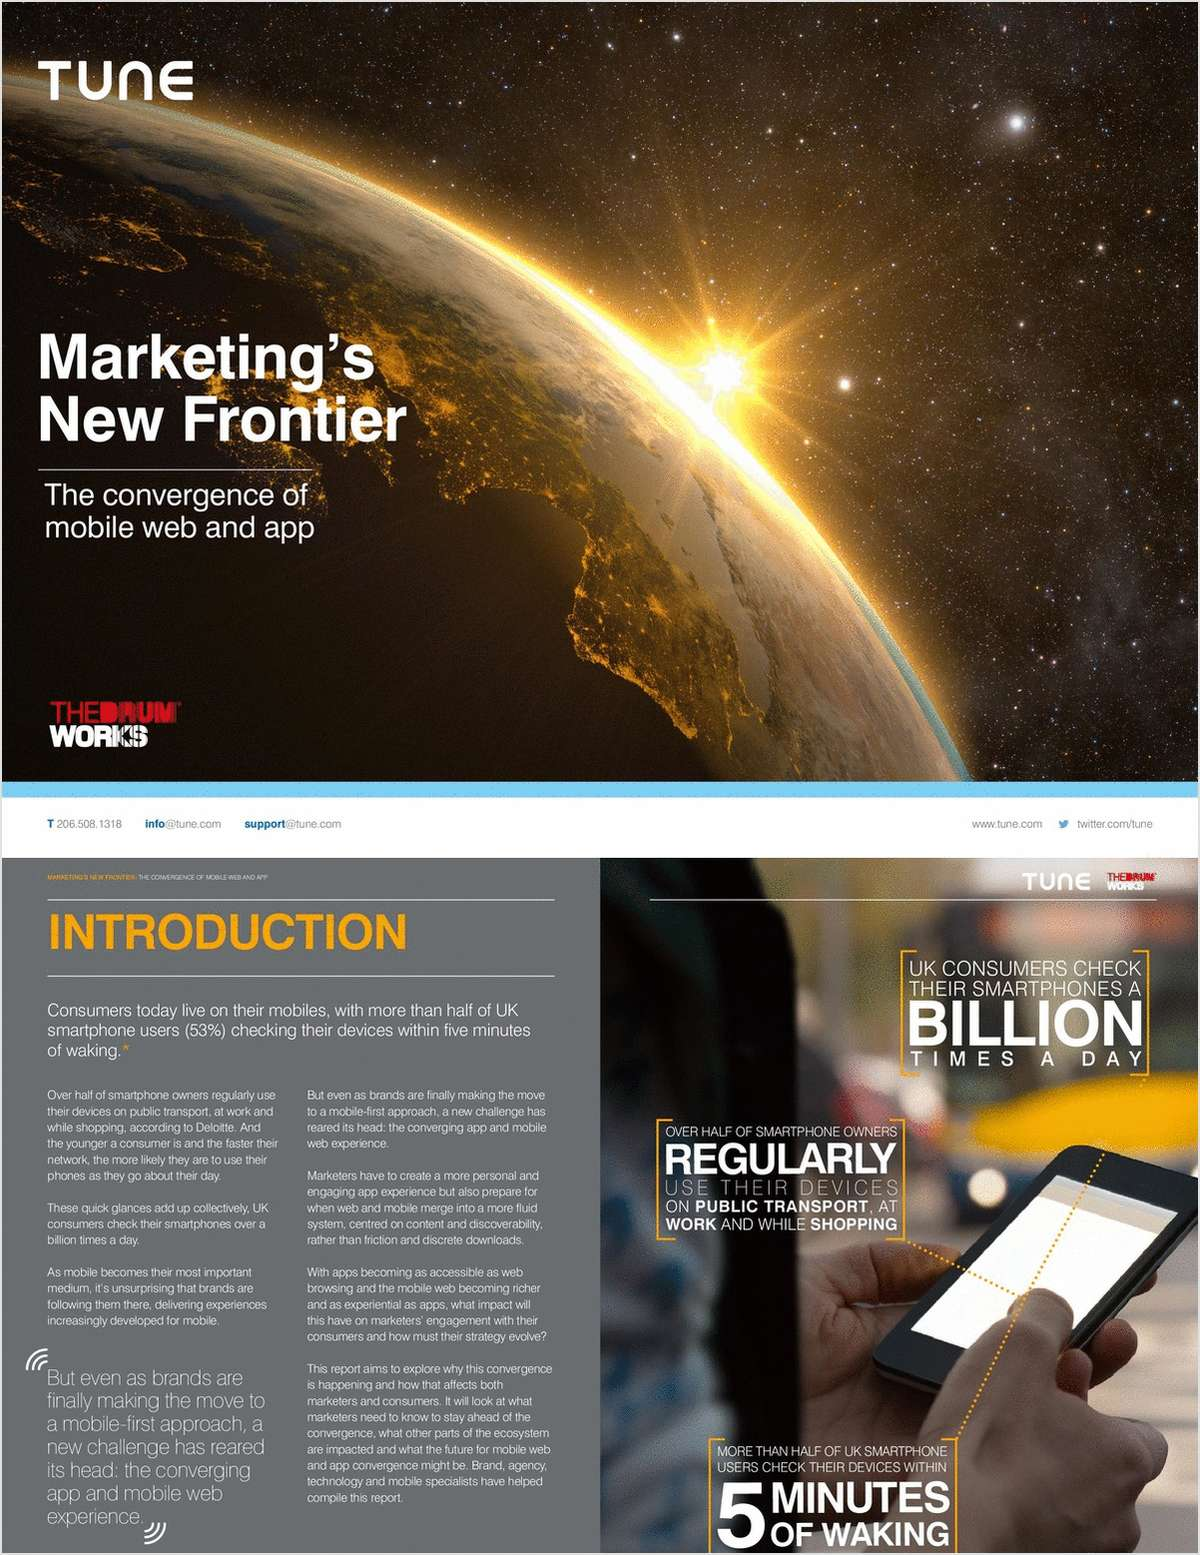 Marketing's New Frontier: The Convergence of Mobile Web and App